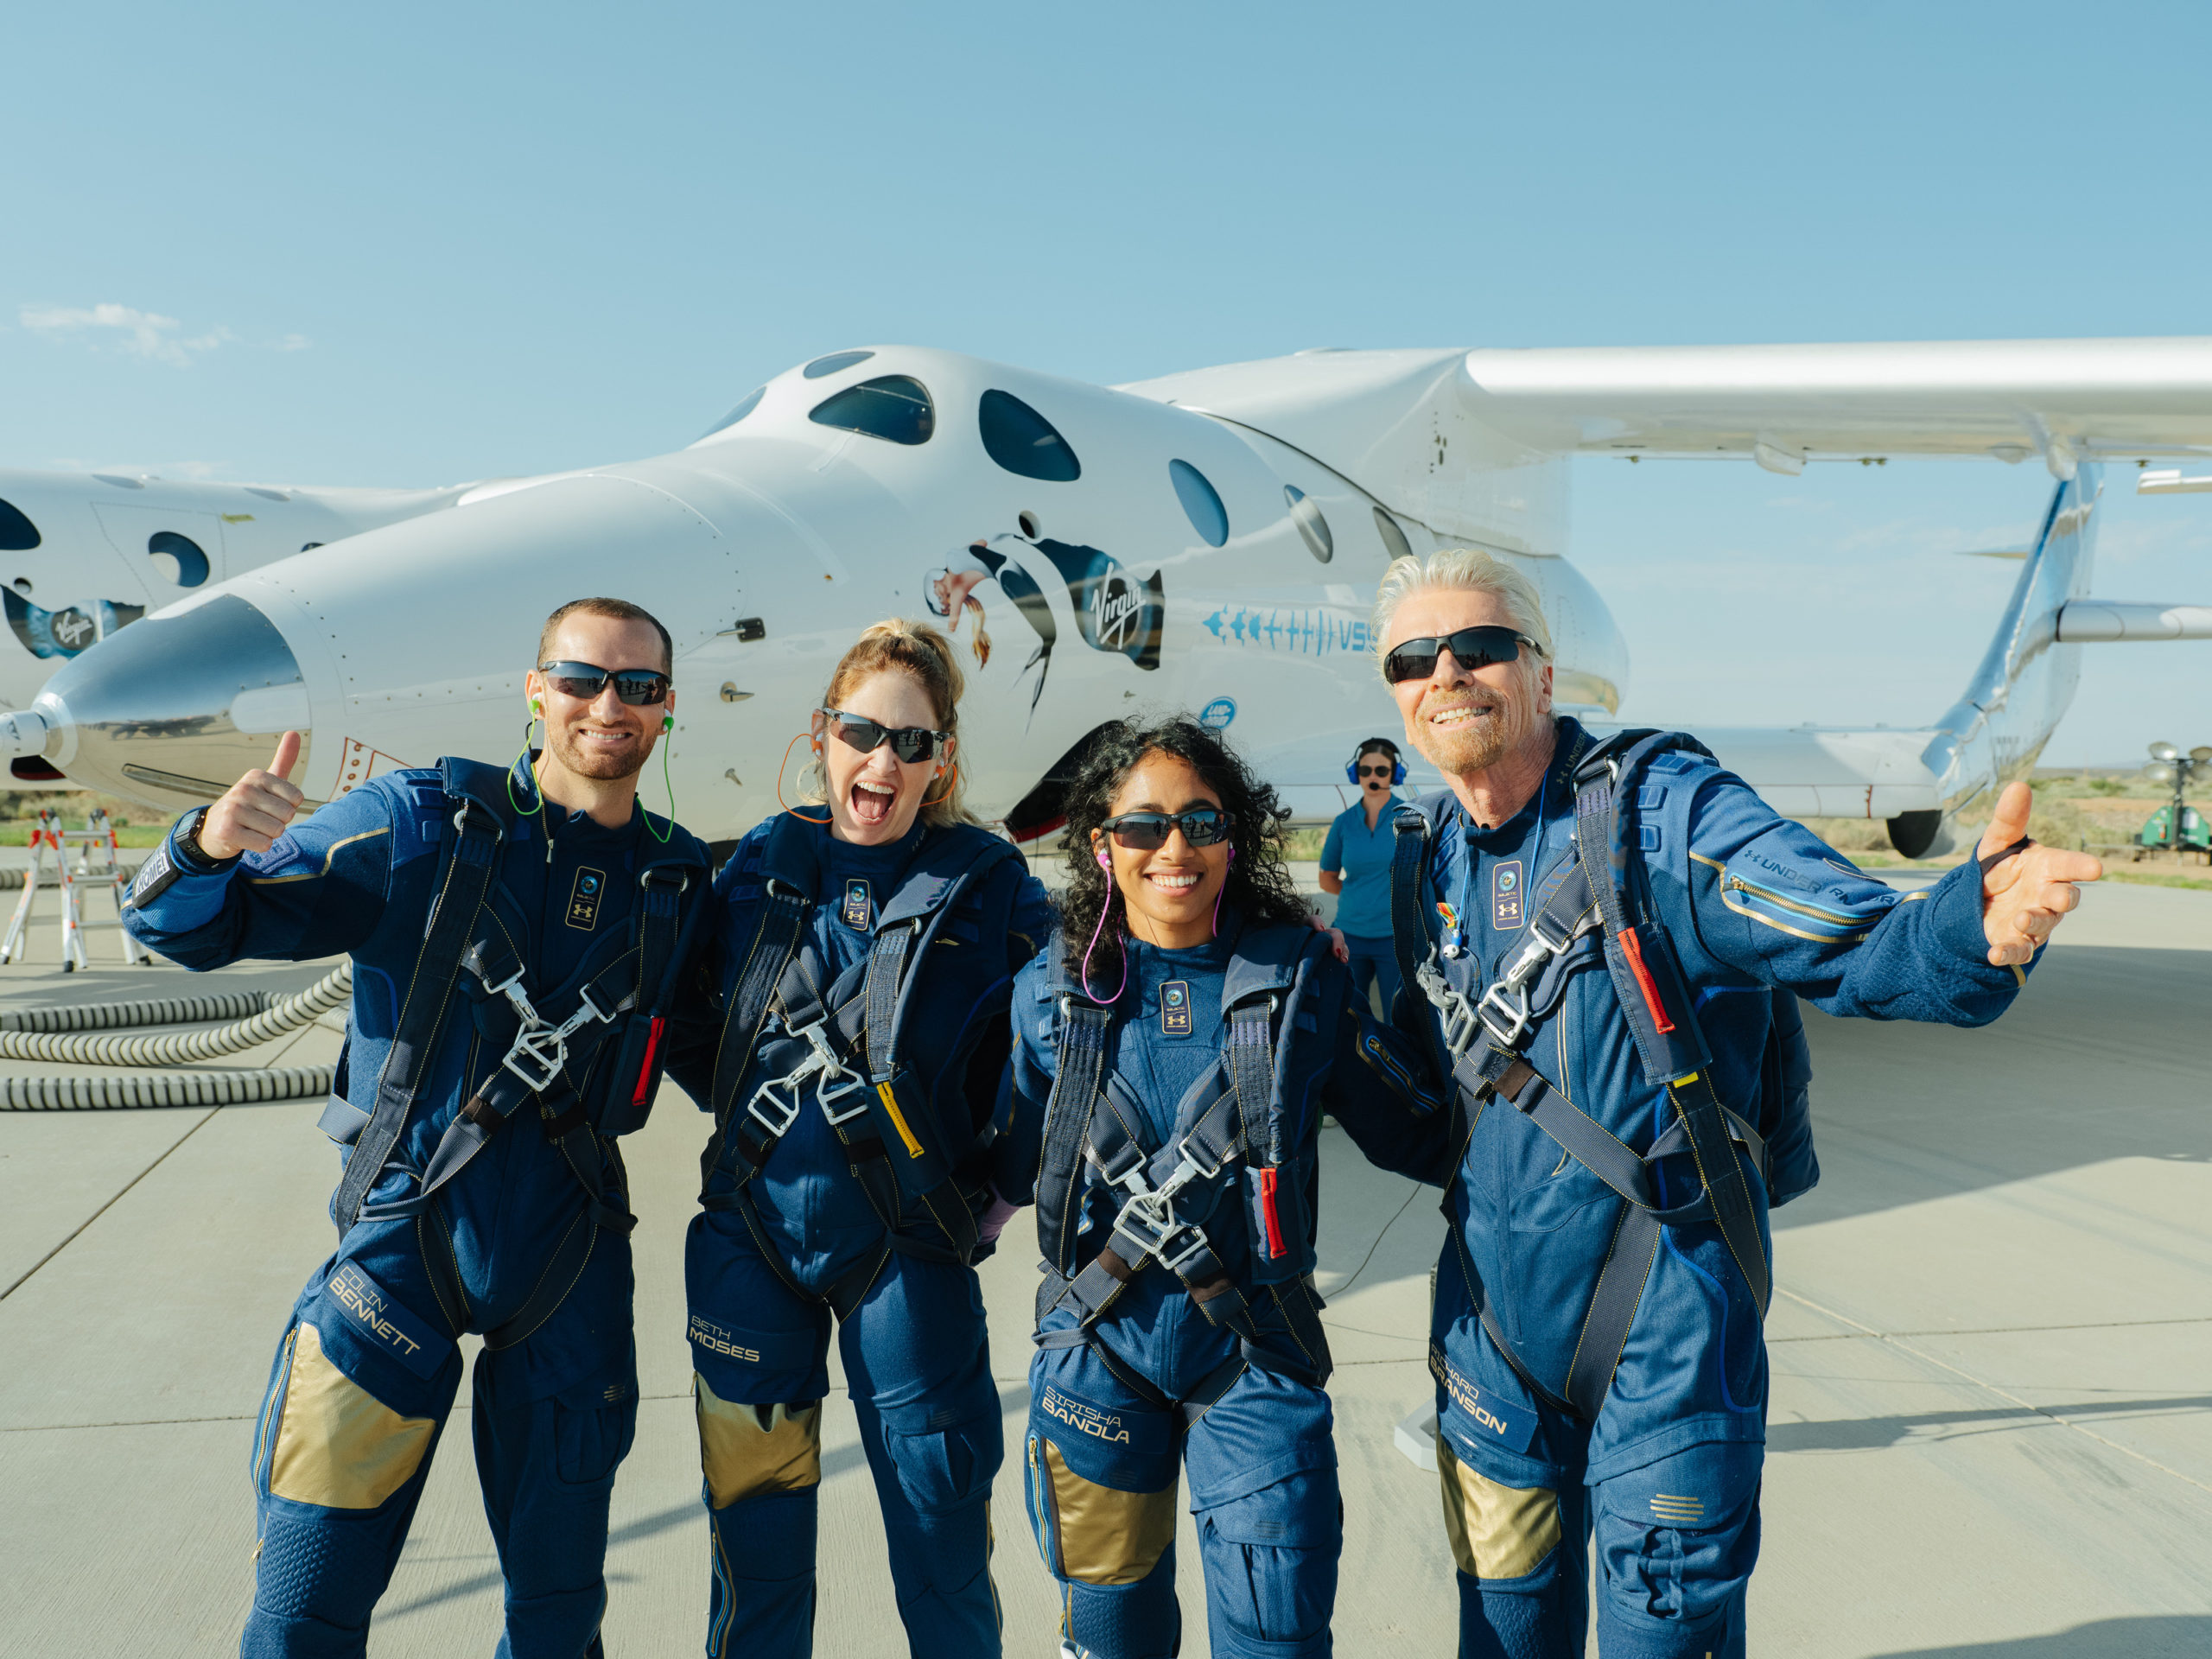 Richard Branson poses with three Virgin Galactic employees in front of the VSS Unity before flying to space on Sunday. (Virgin Galactic)